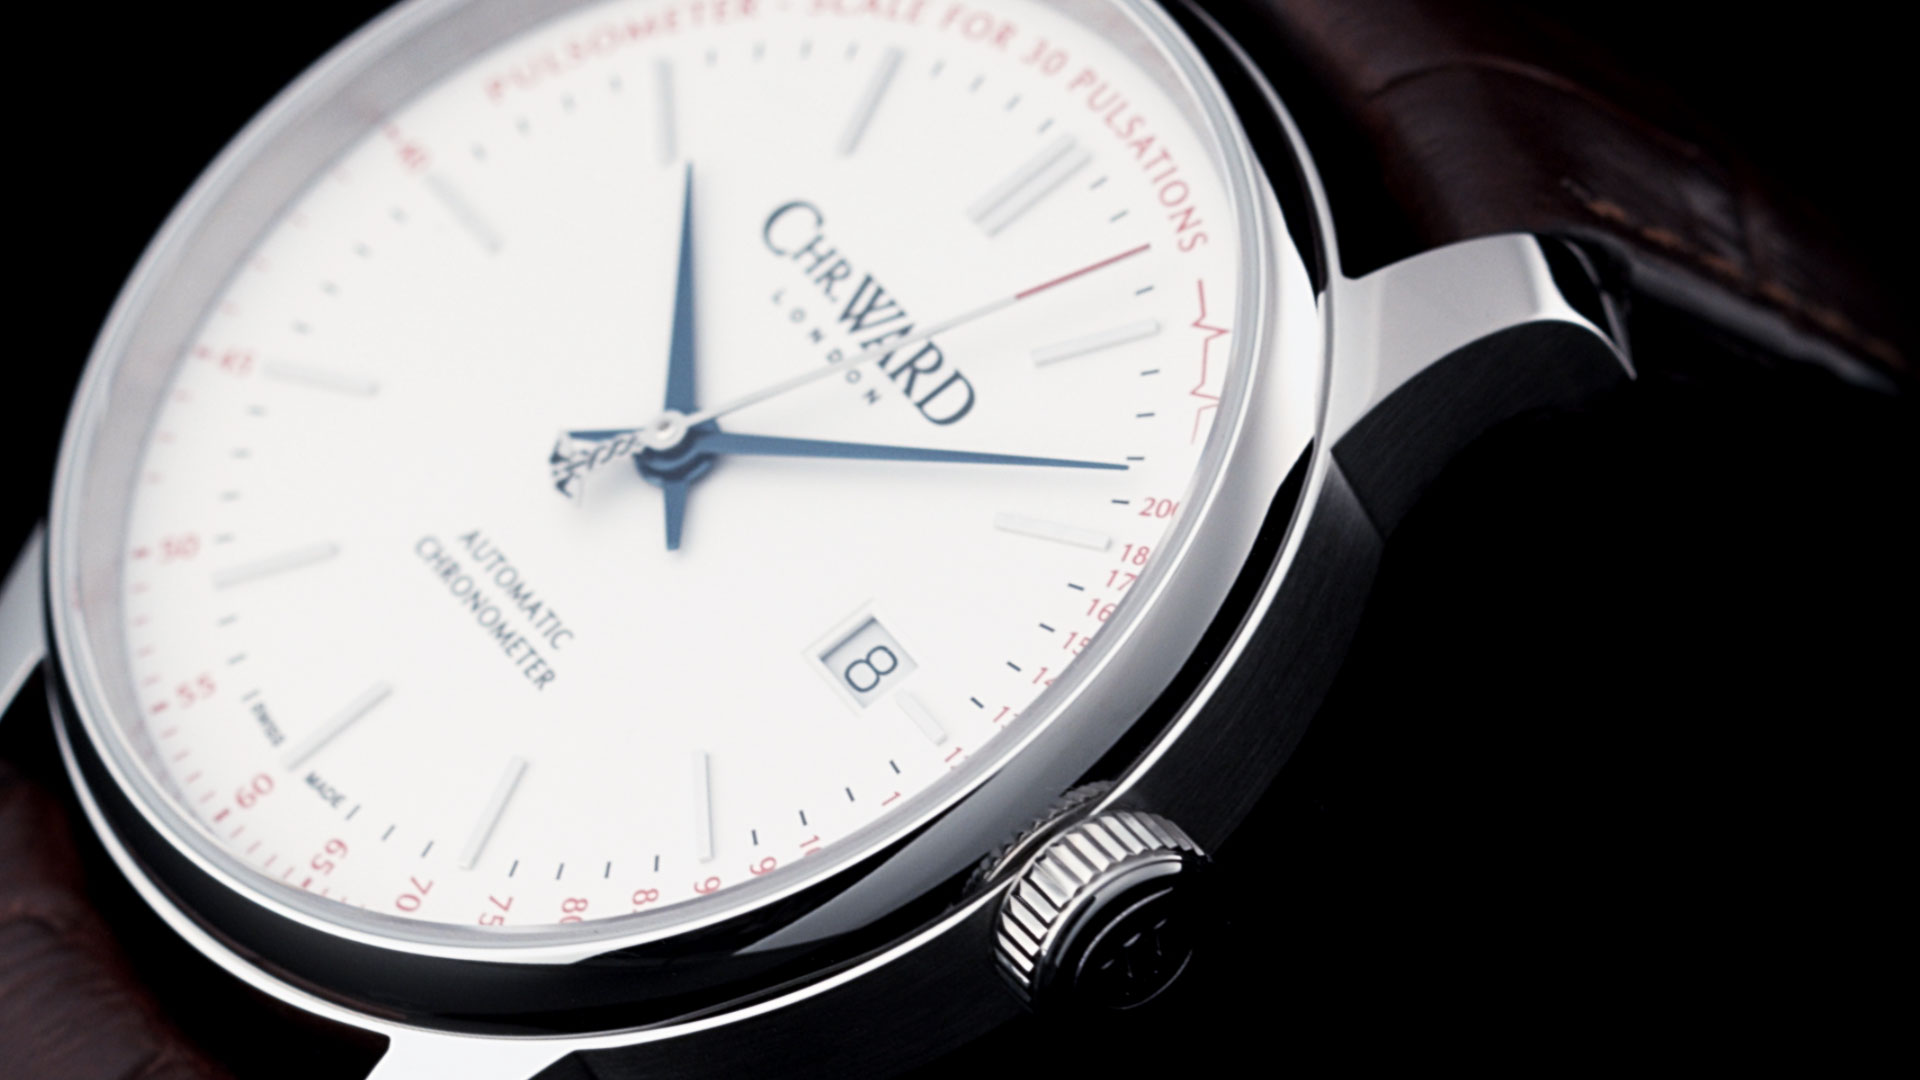 ChristopherWard-Pulsometer-img2